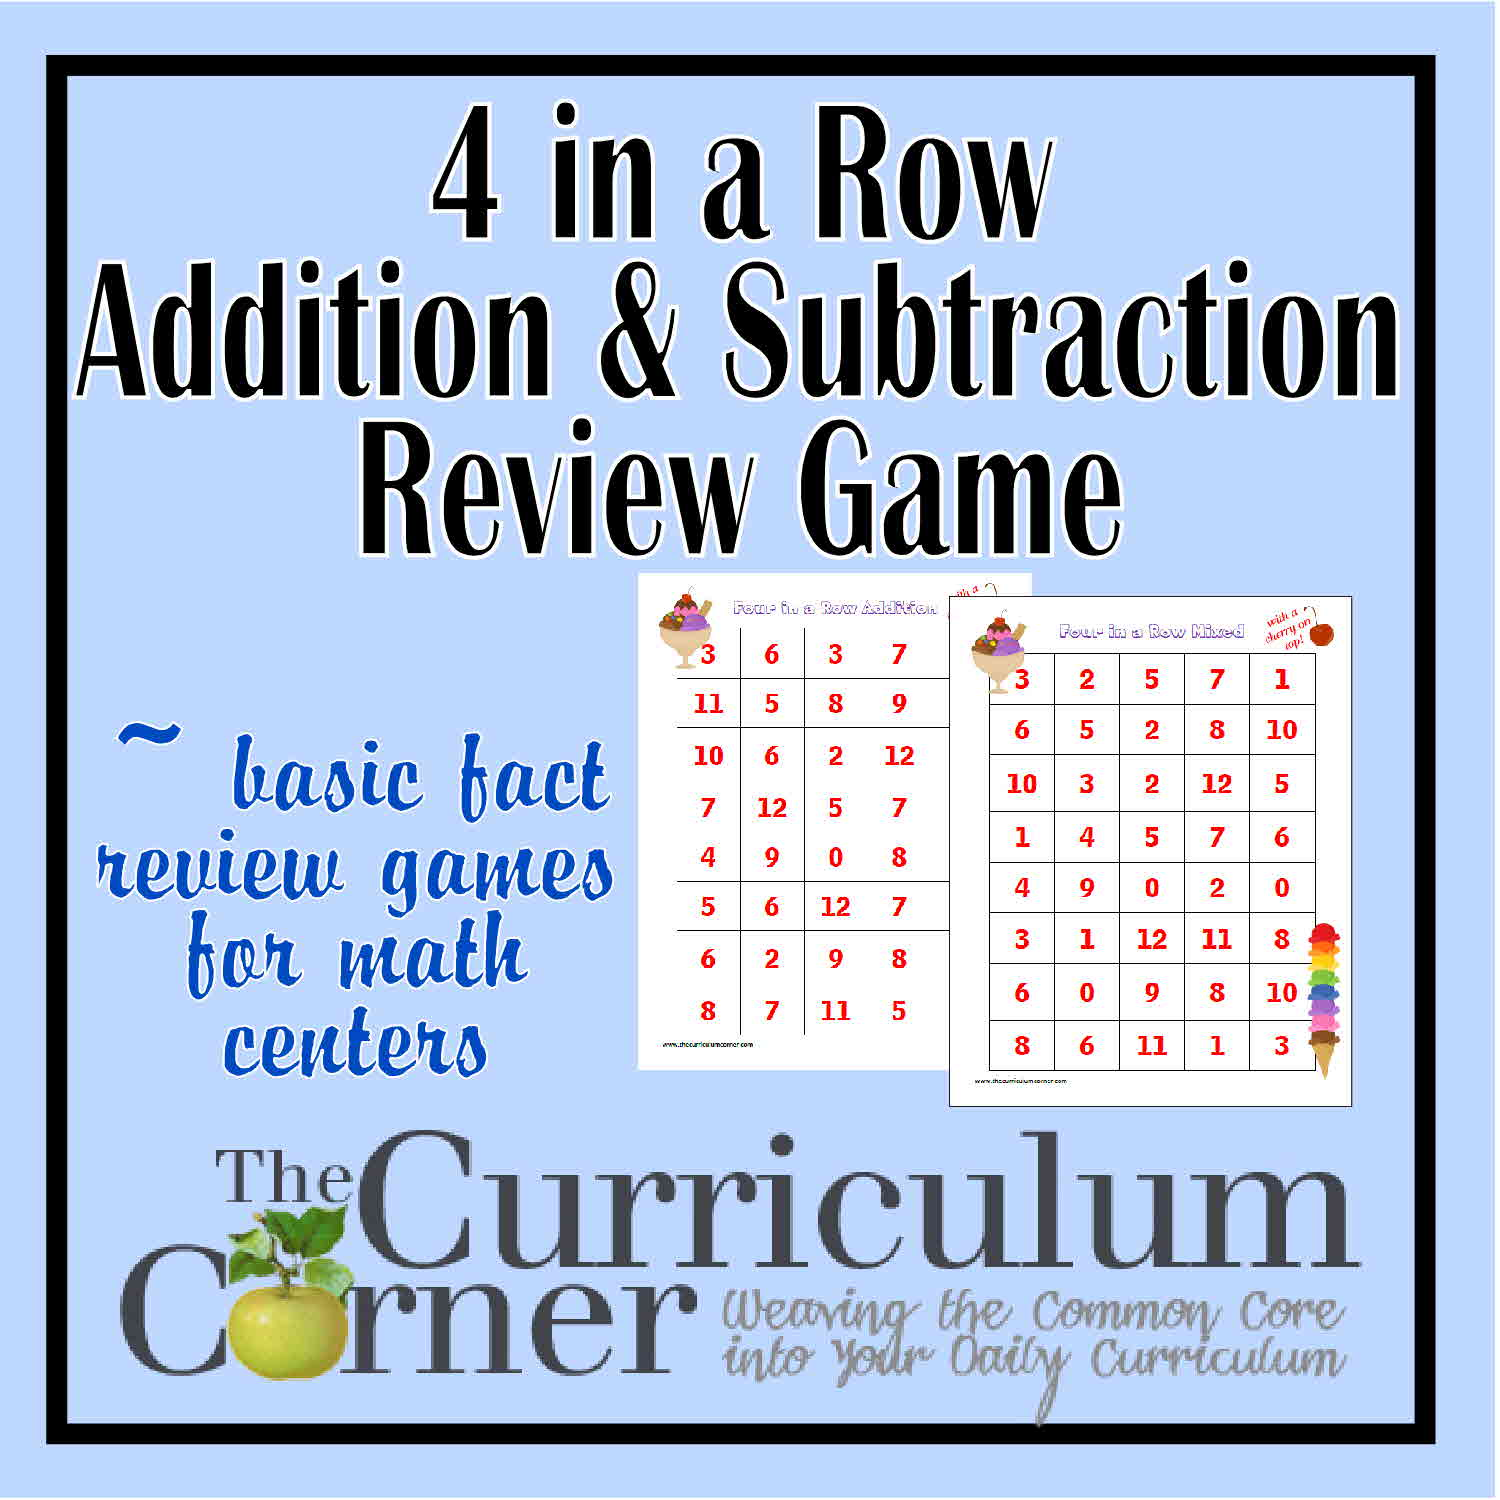 4 In a Row Math Fact Review Games - The Curriculum Corner 123